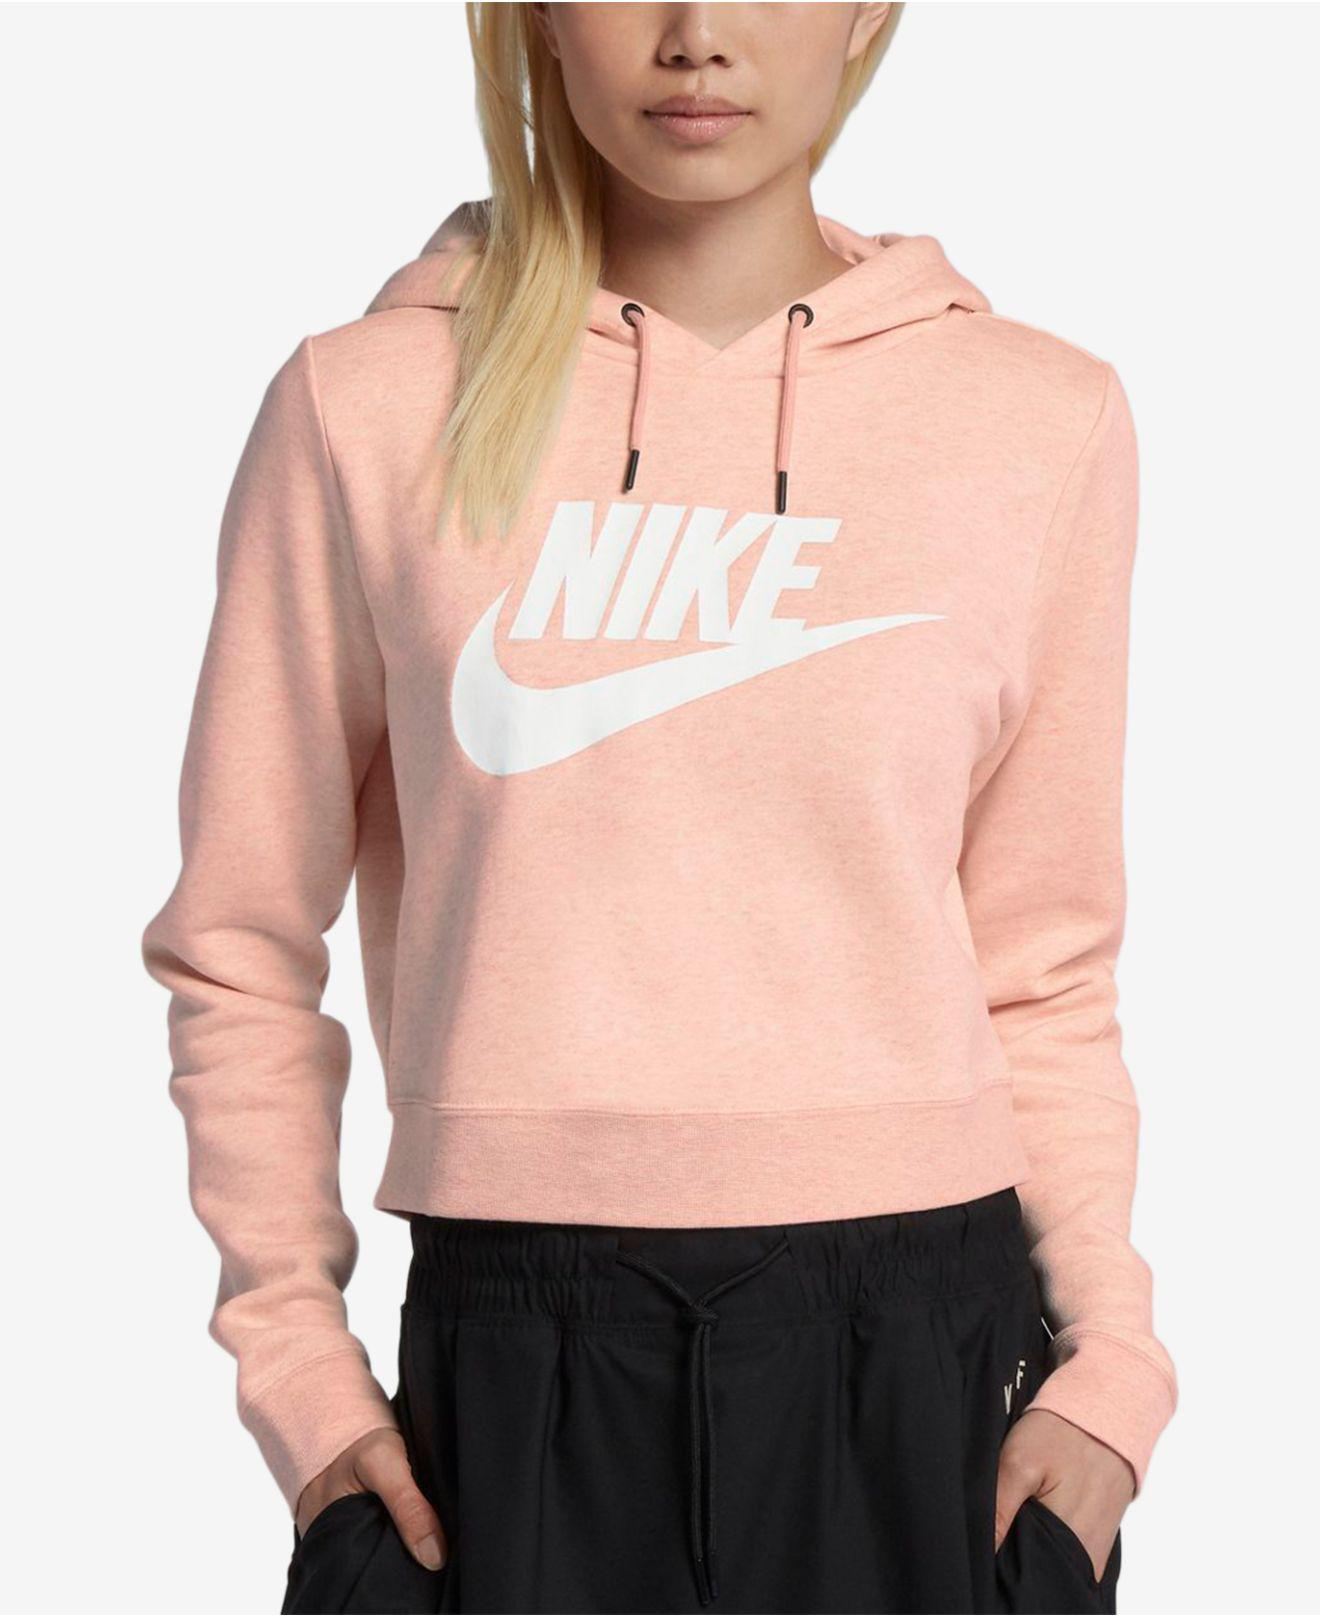 f76f0bc367d32 Lyst - Nike Sportswear Rally Women s Cropped Hoodie in Pink - Save 60%